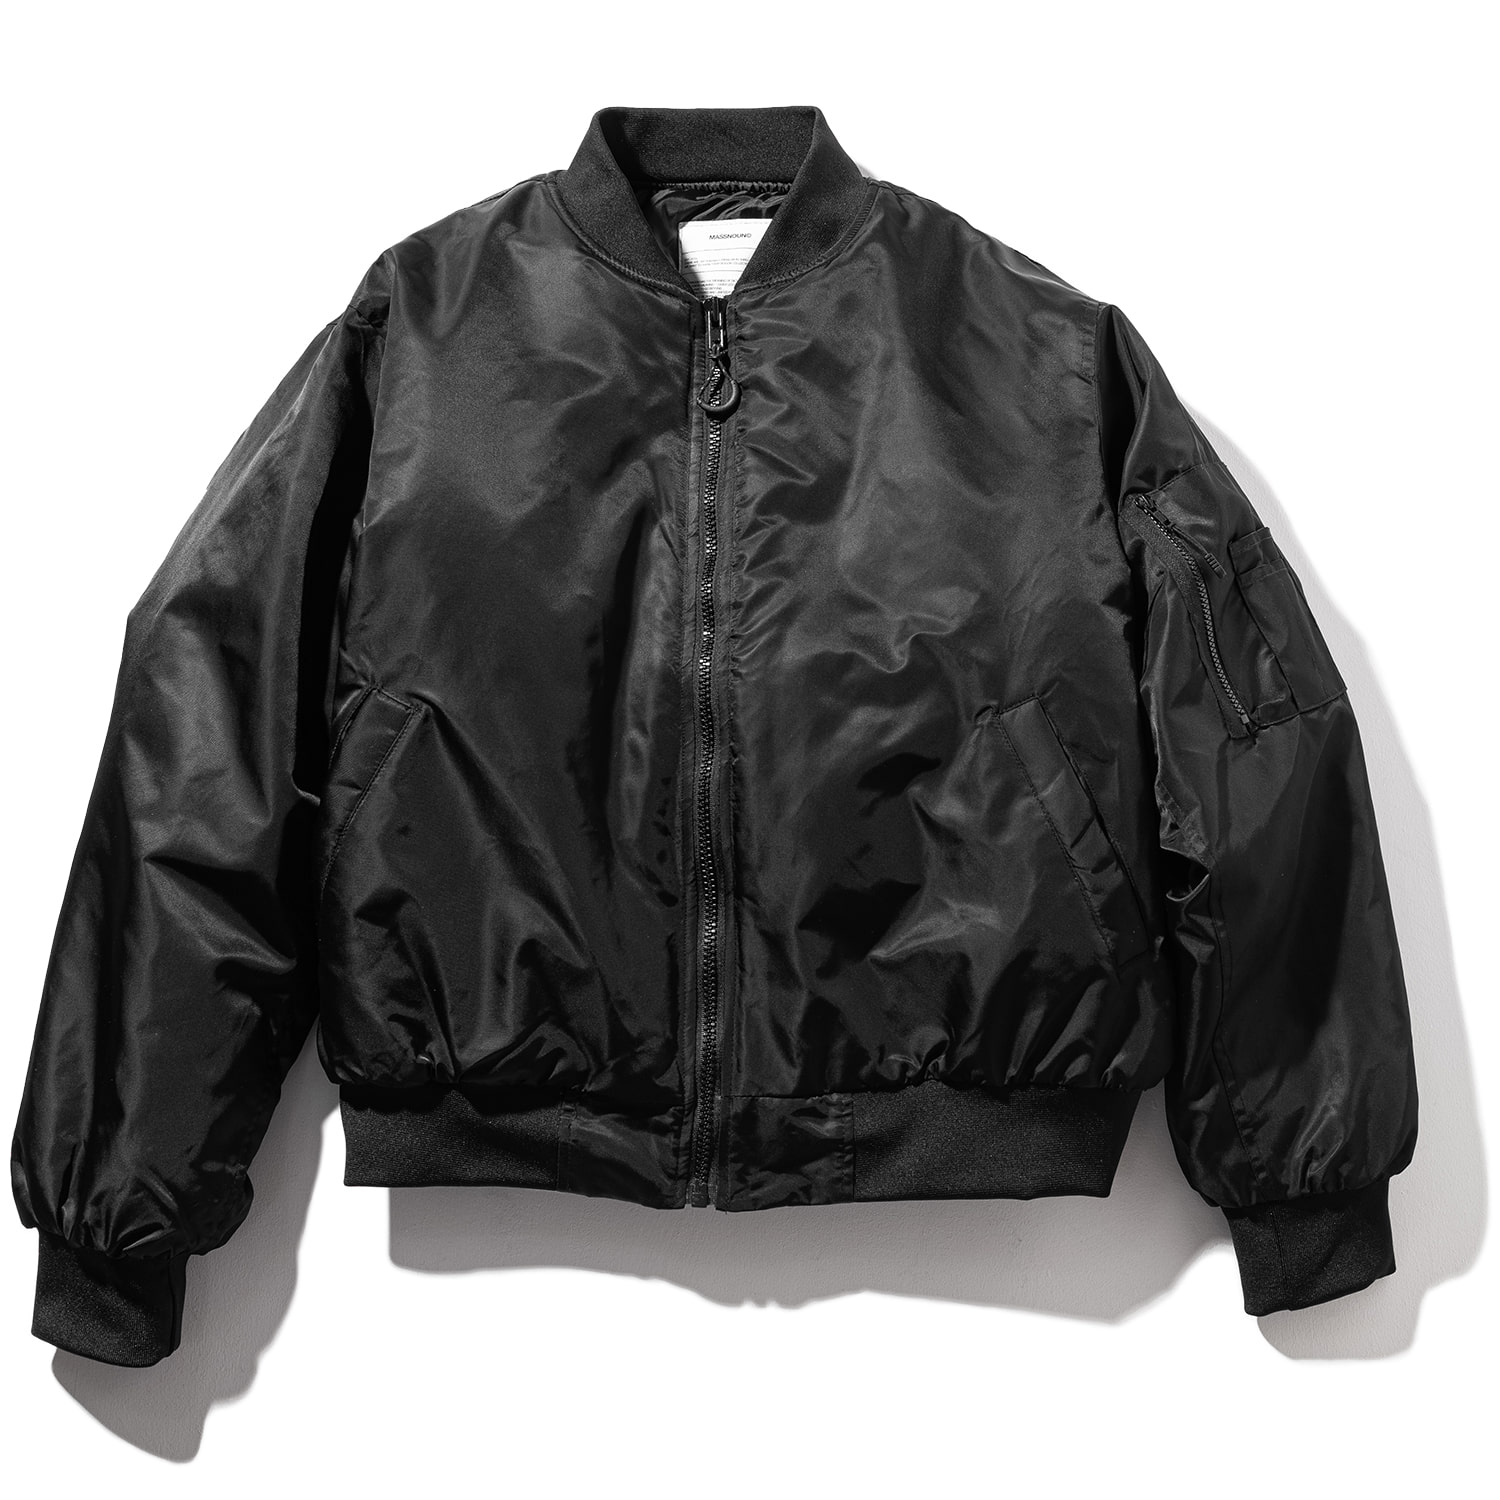 8OZ OVERSIZED MA-1 JACKET MFZPD003-BK